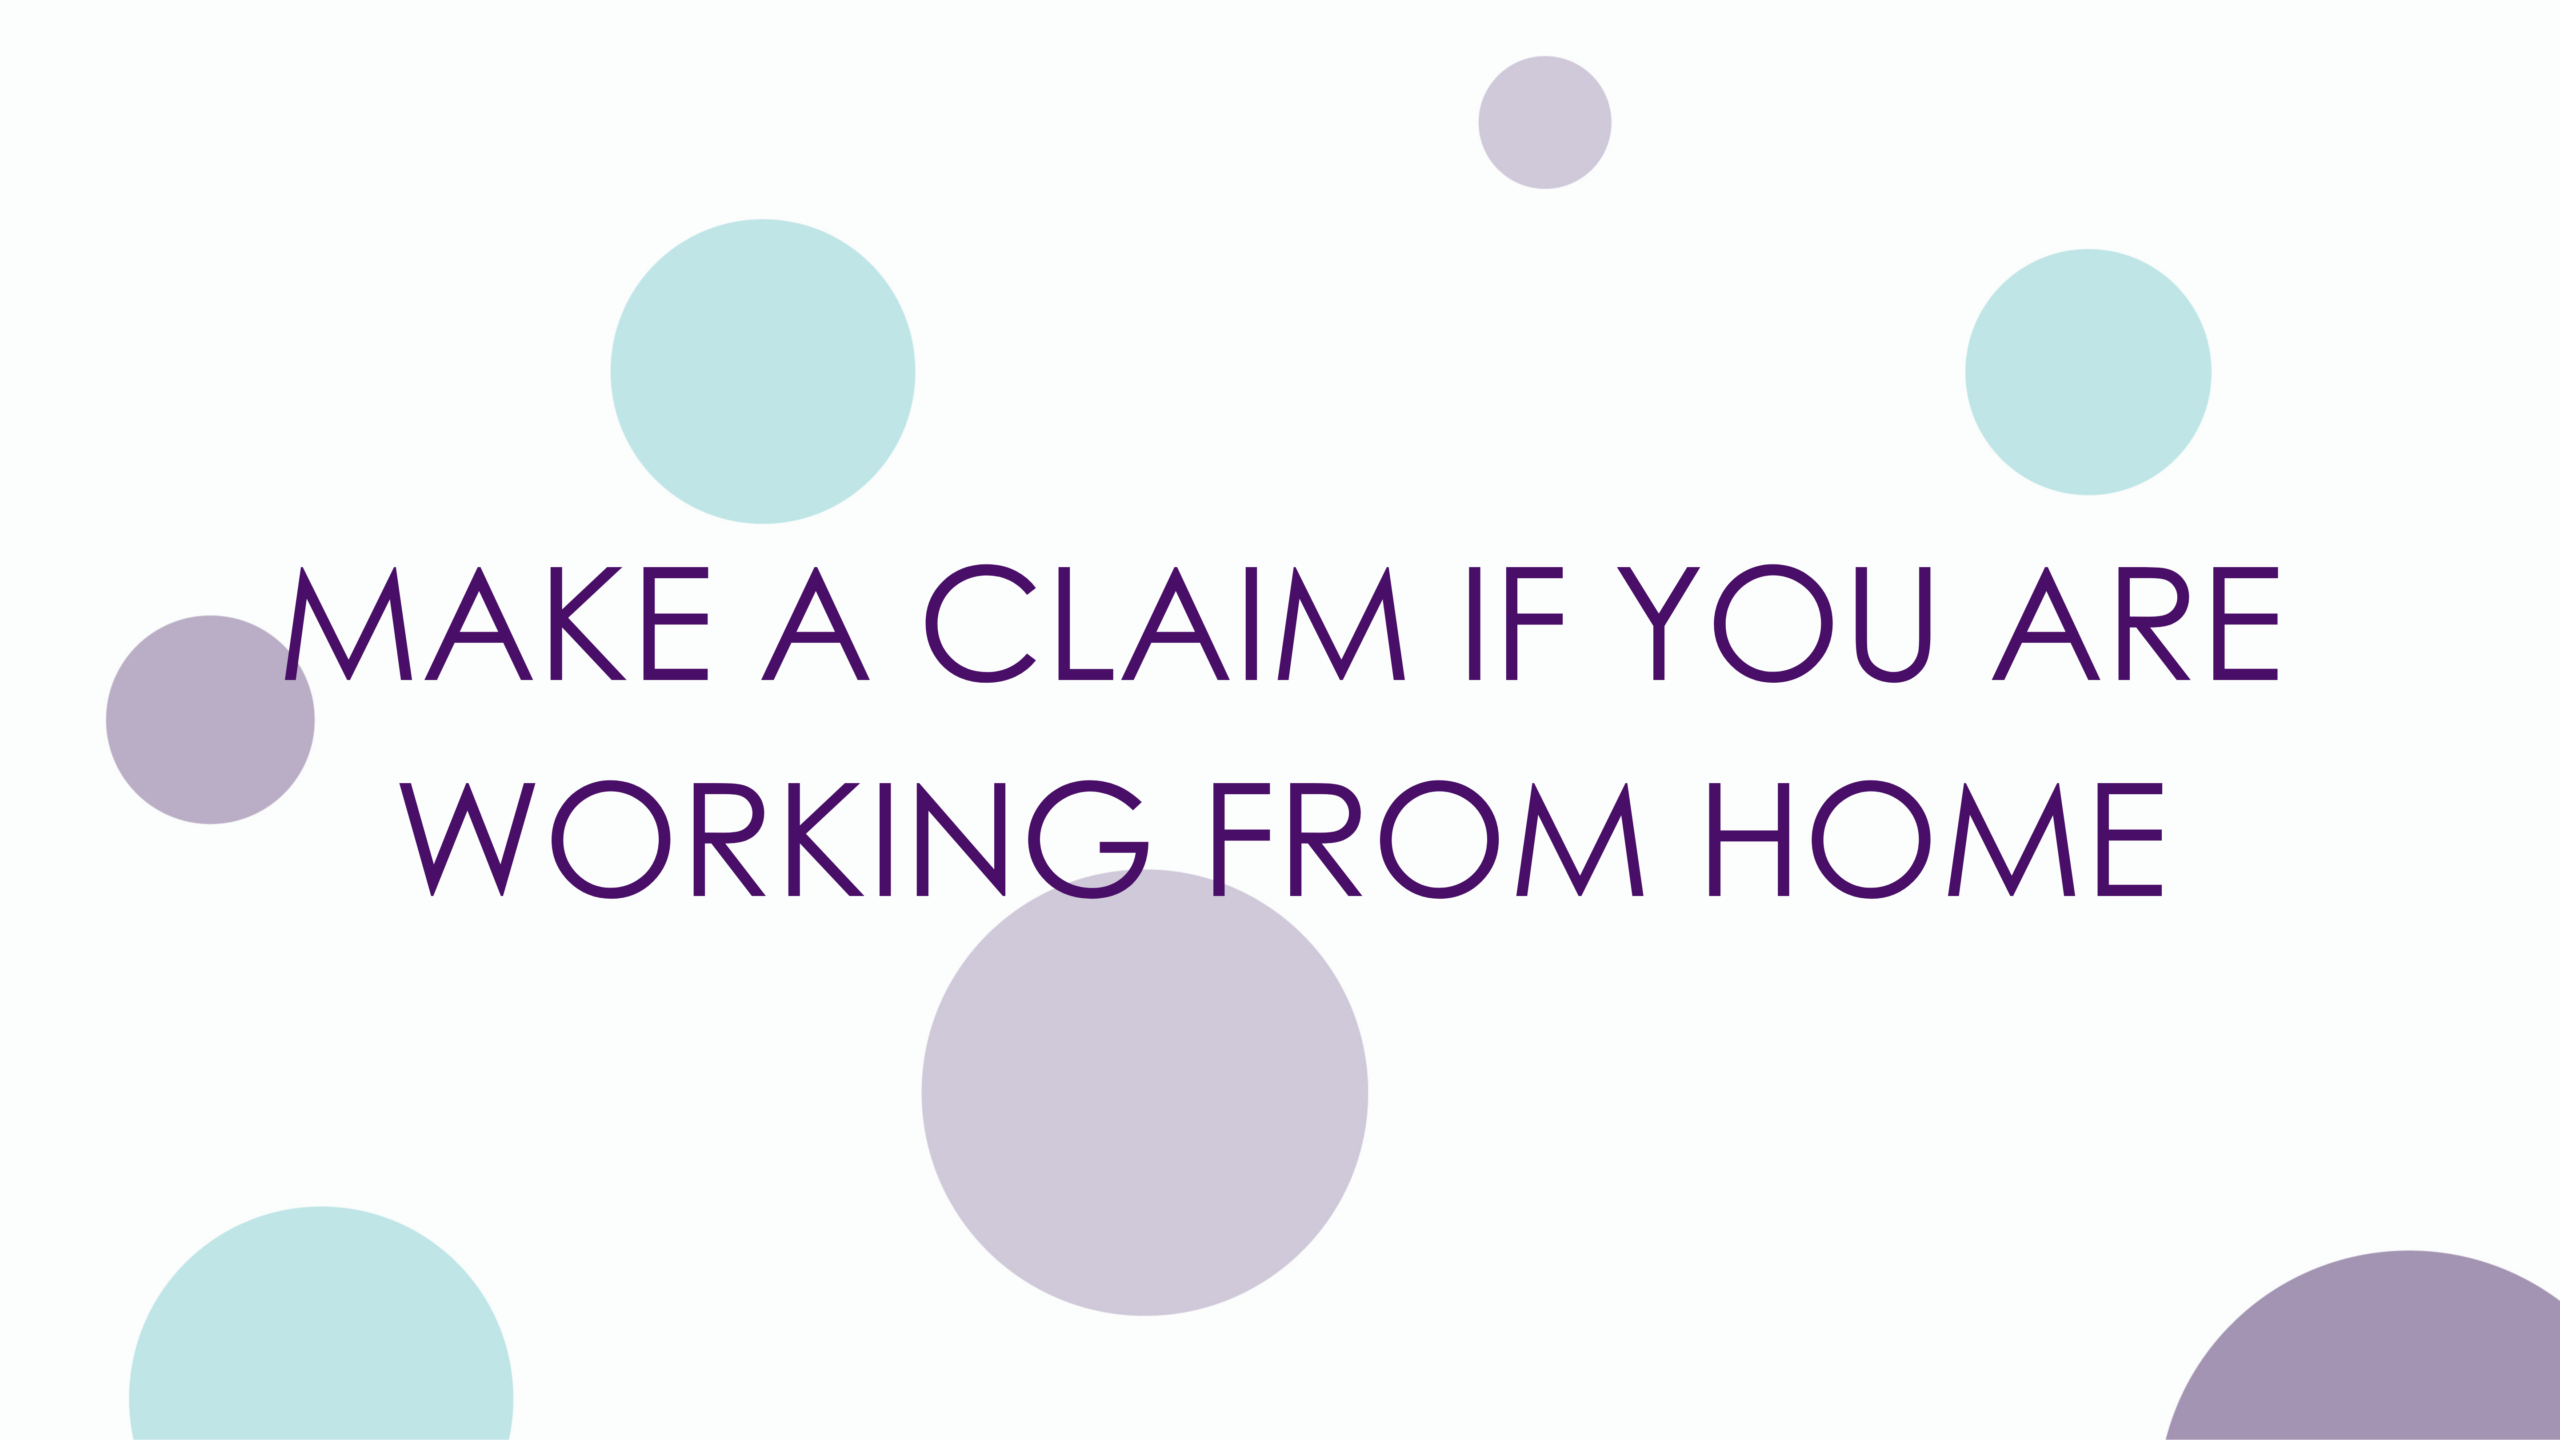 MAKE A CLAIM IF YOU ARE WORKING FROM HOME